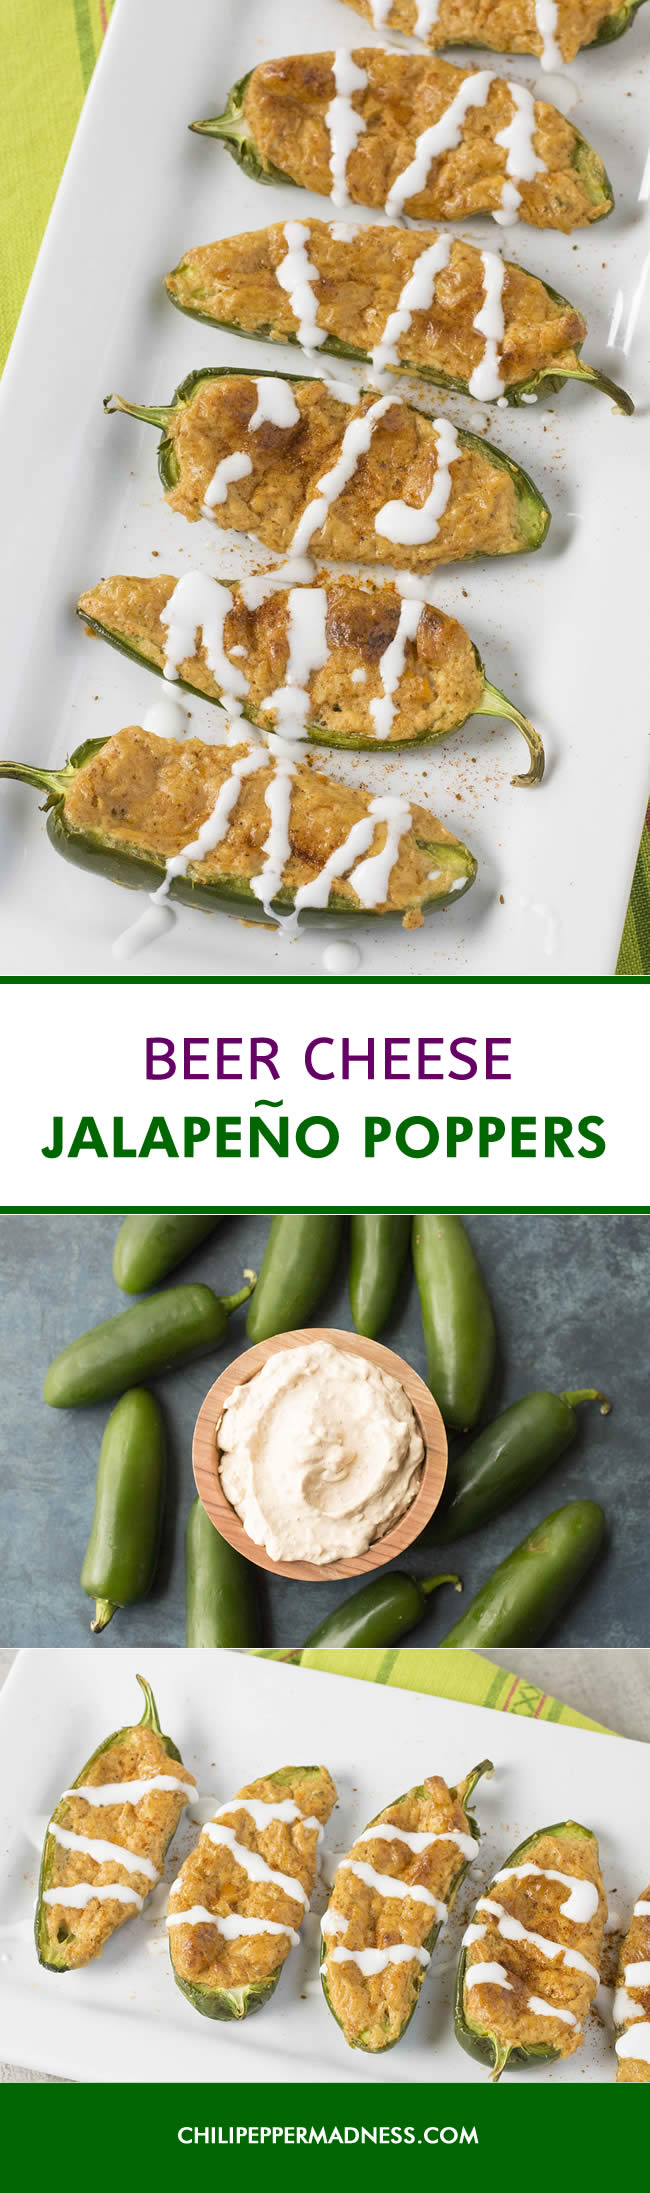 Beer Cheese Jalapeno Poppers - Recipe